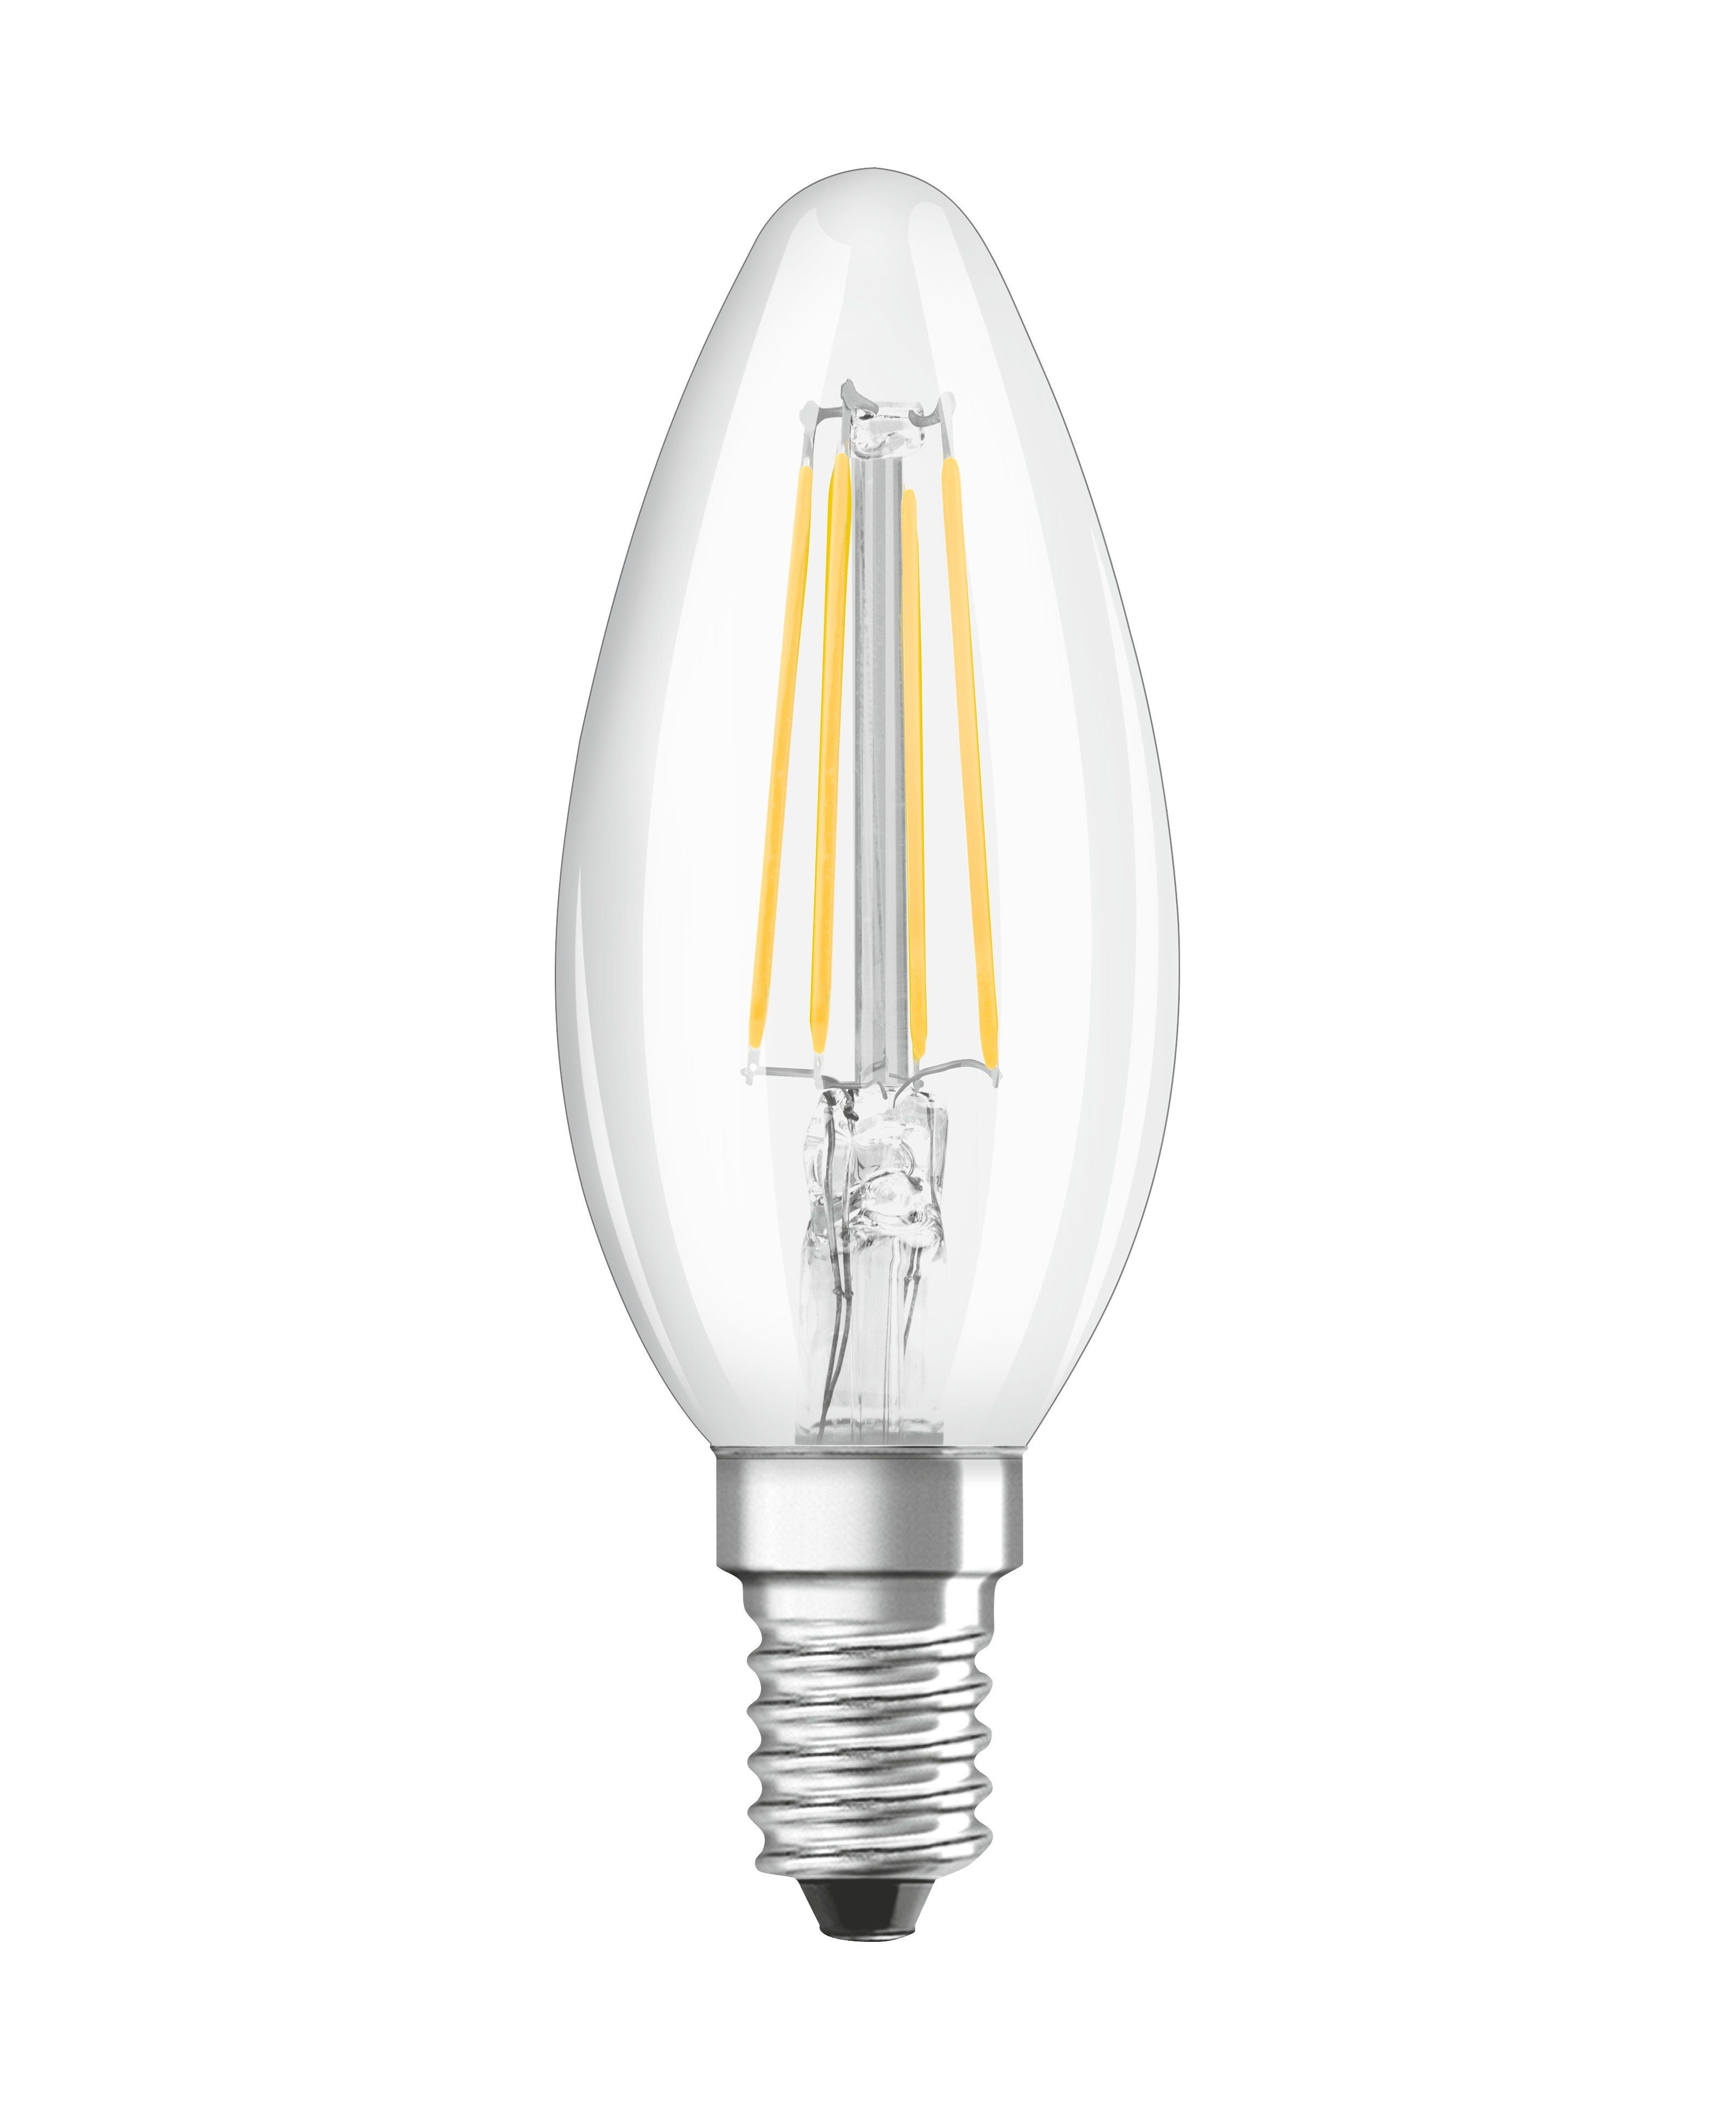 Osram LED RELAX and ACTIVE CLASSIC LED-Lampe »SST CLAS B 44 CL 5 W/827 E14«